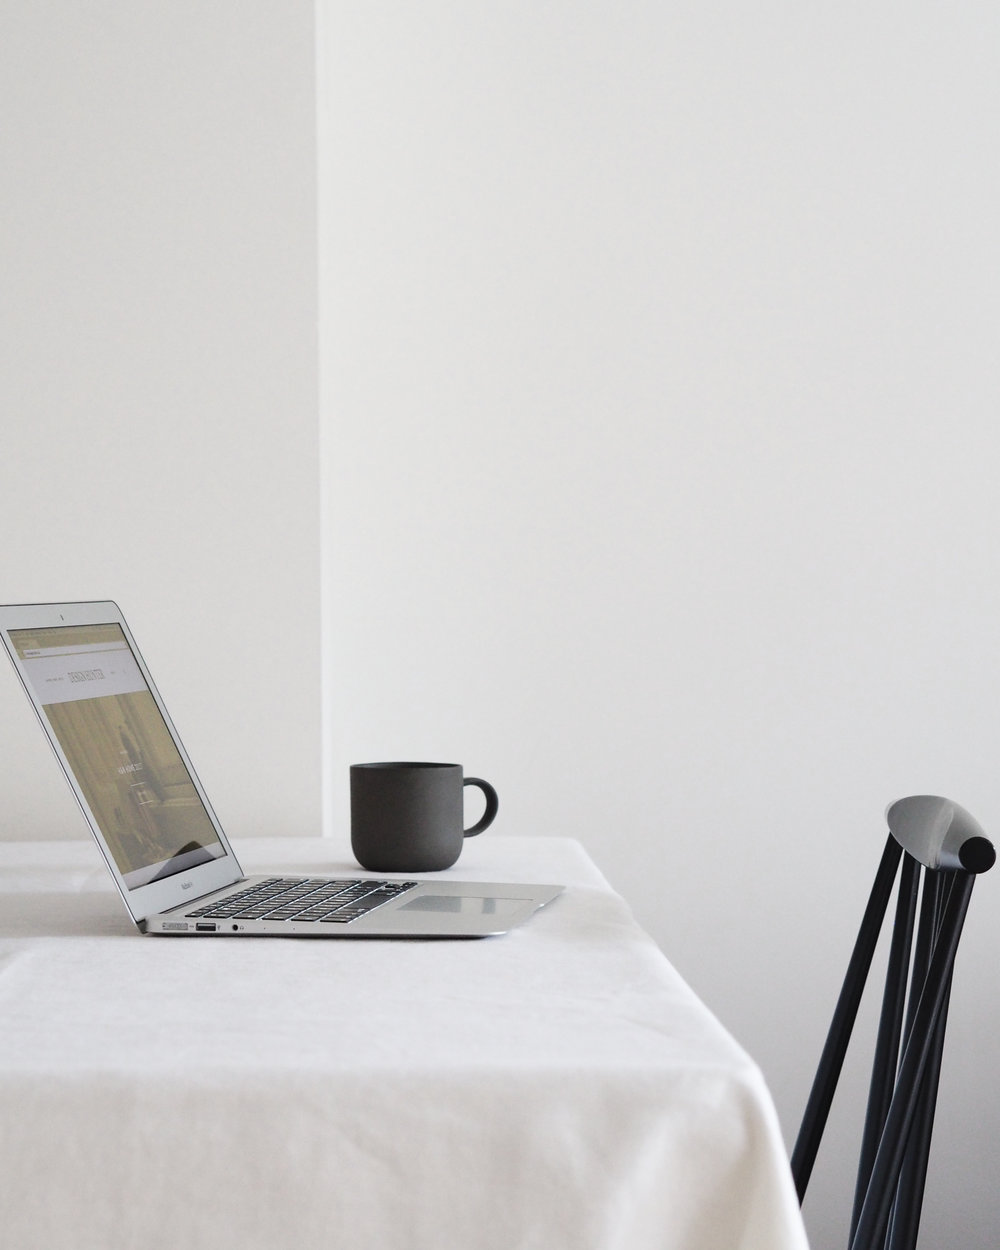 Laptop and mug on table